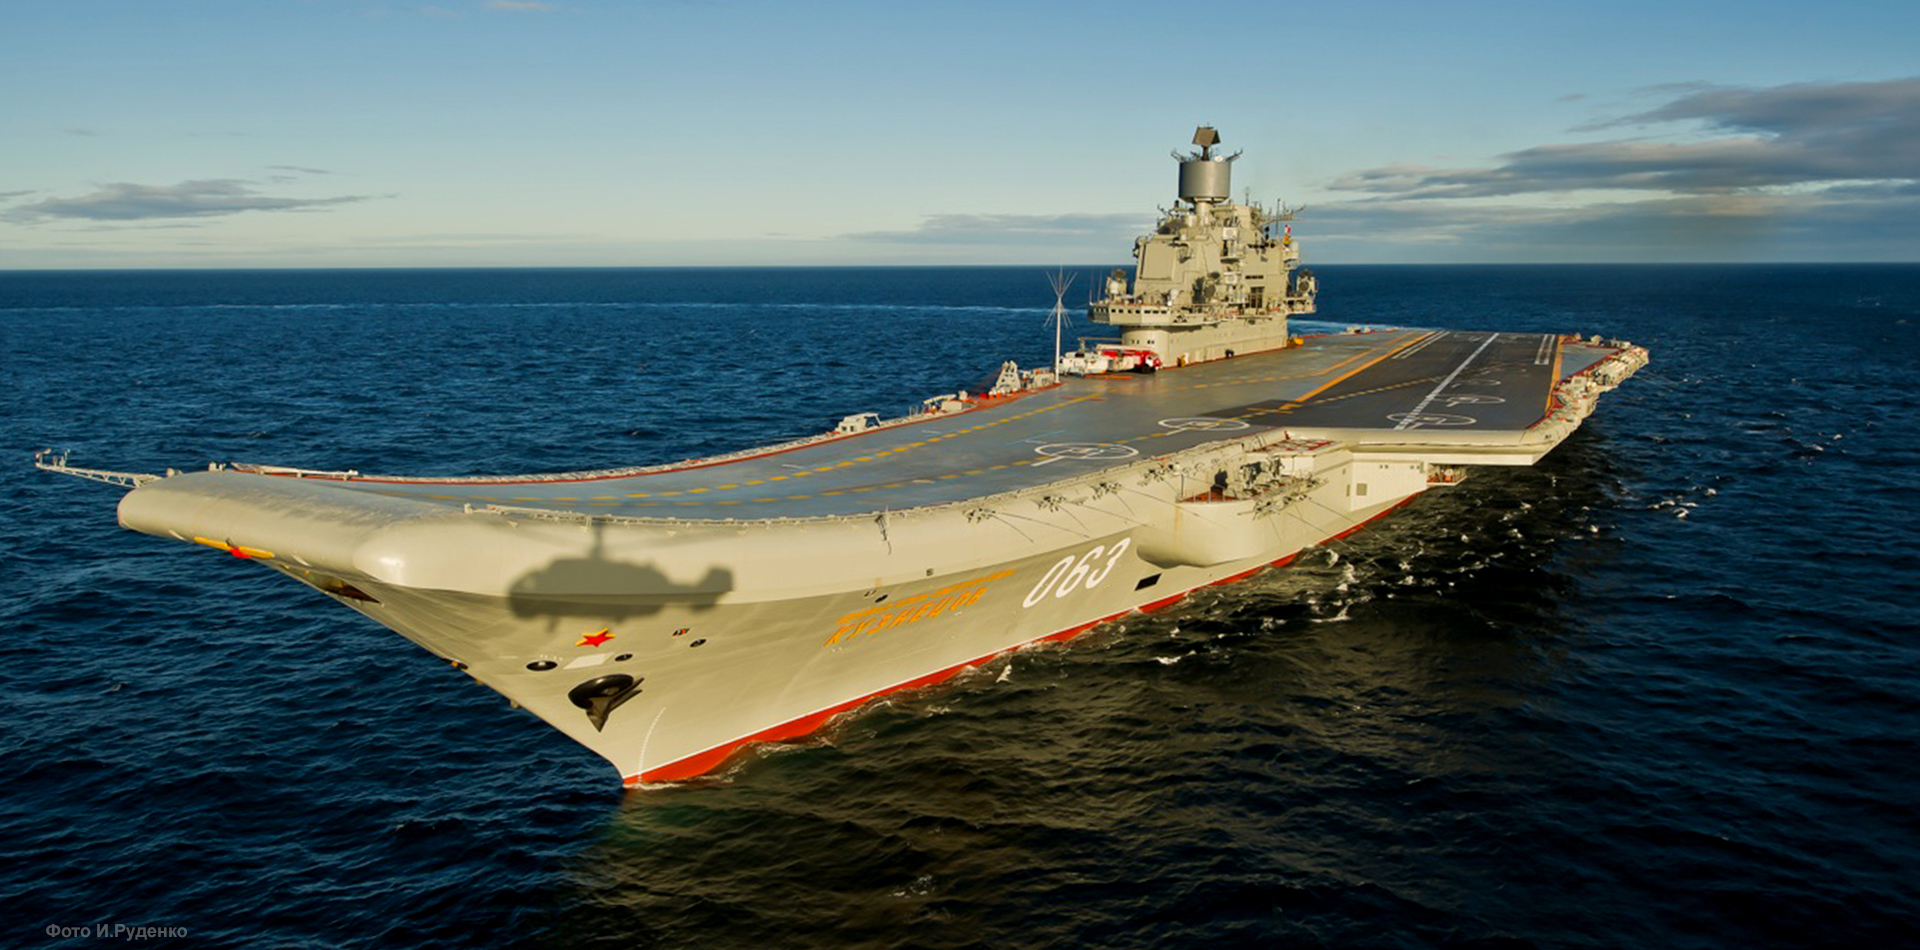 The lone carrier of the Russian Navy.